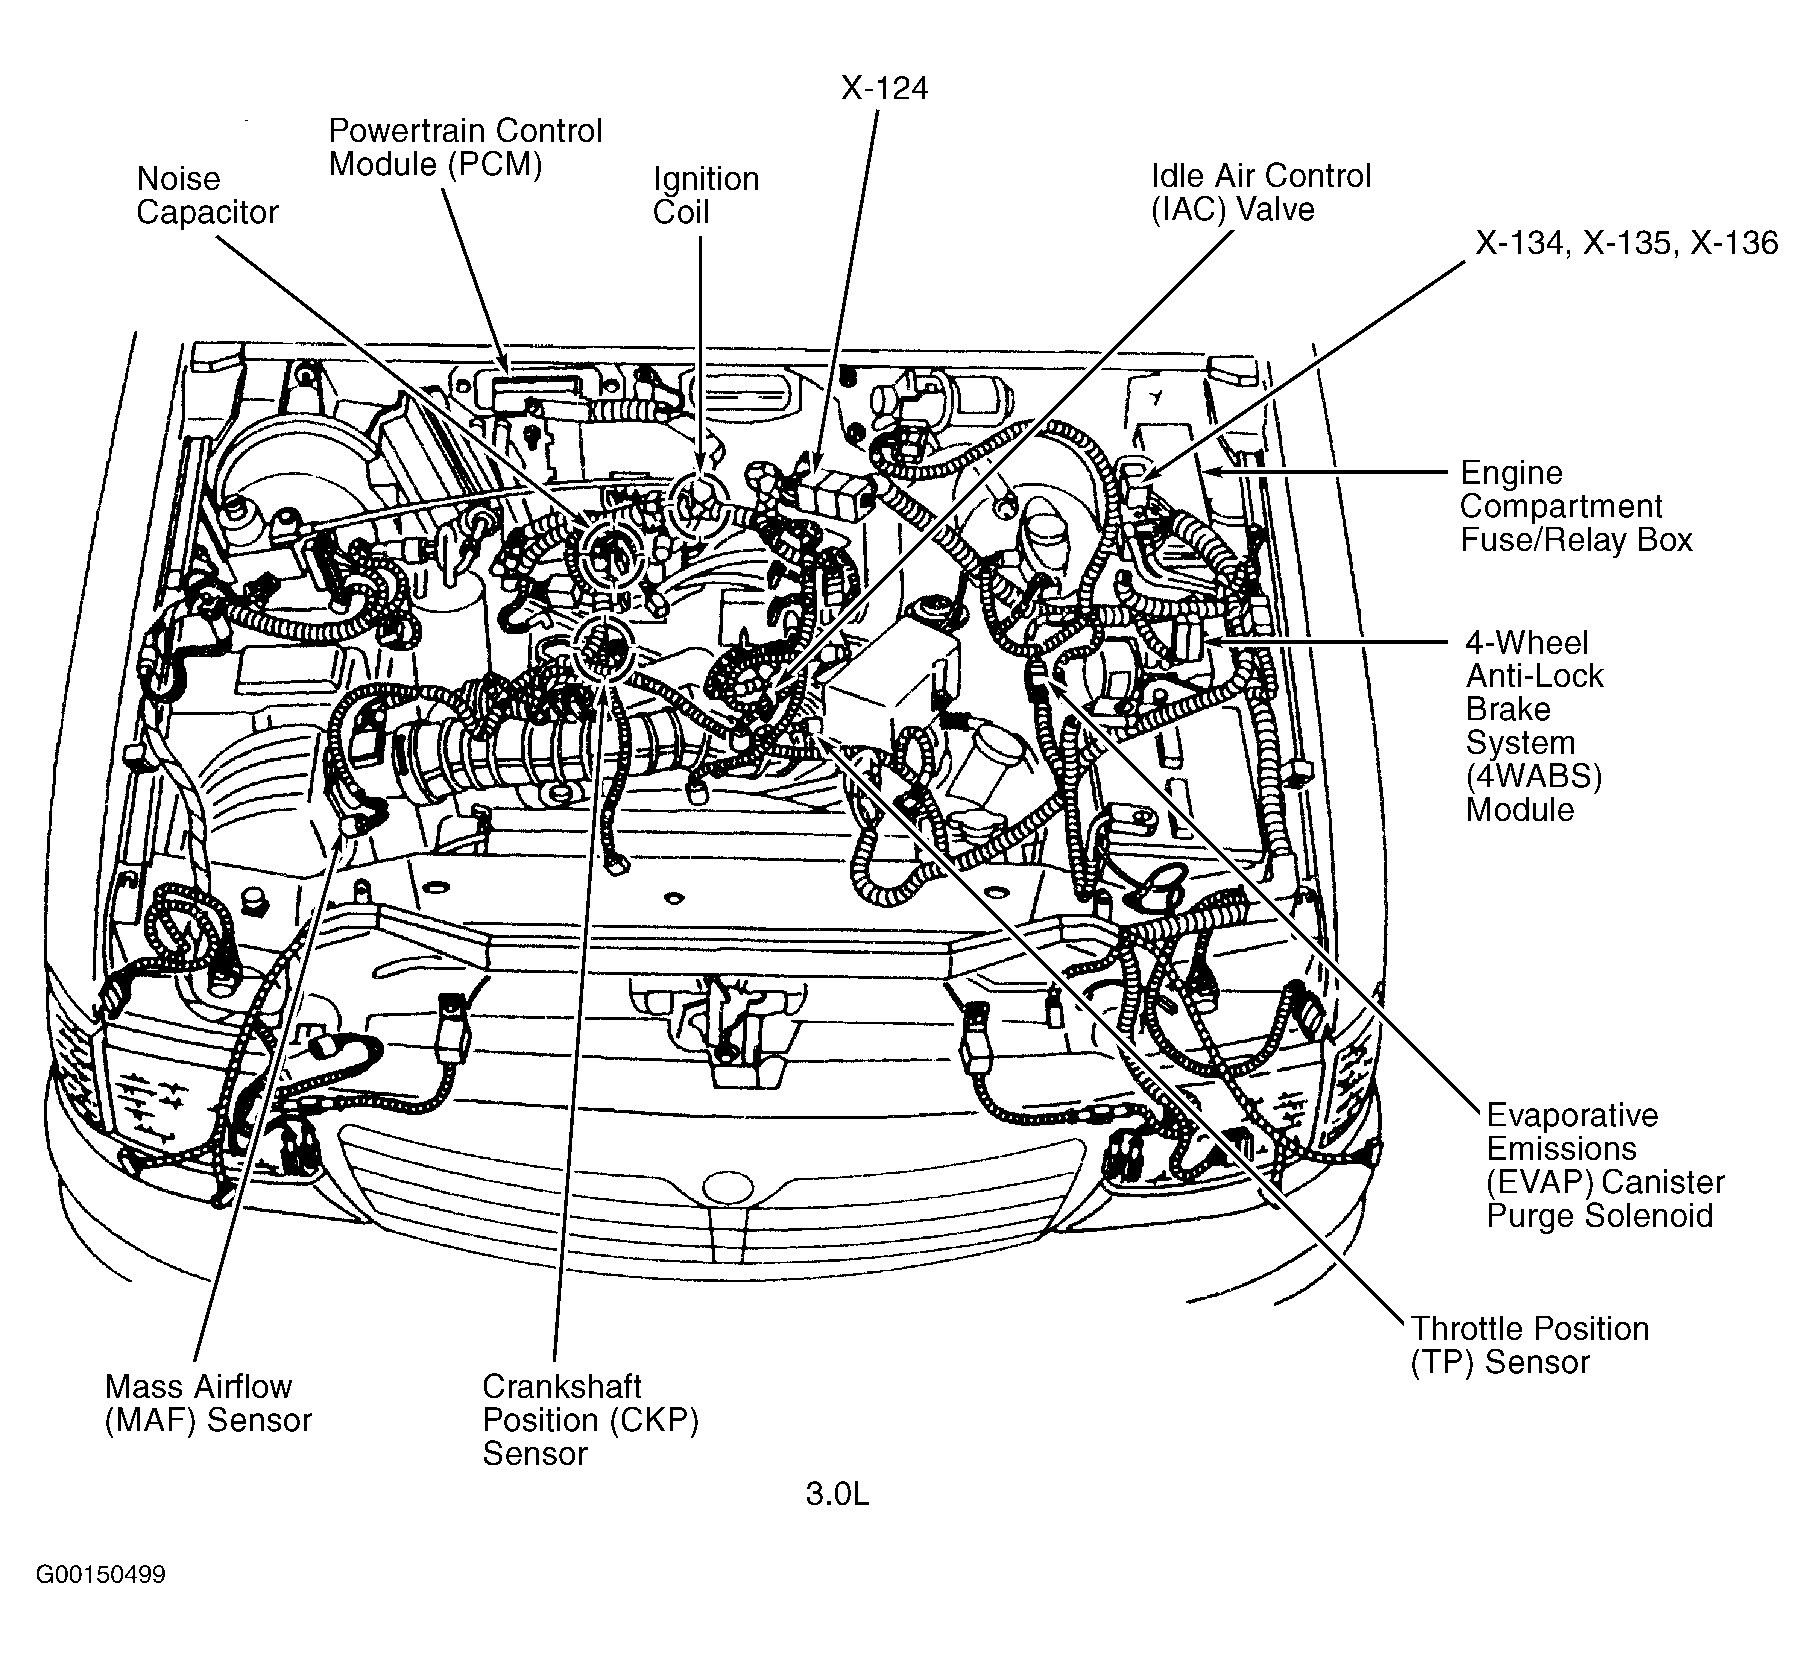 hose routing diagram on engine diagrams for 1989 buick century 3 3l